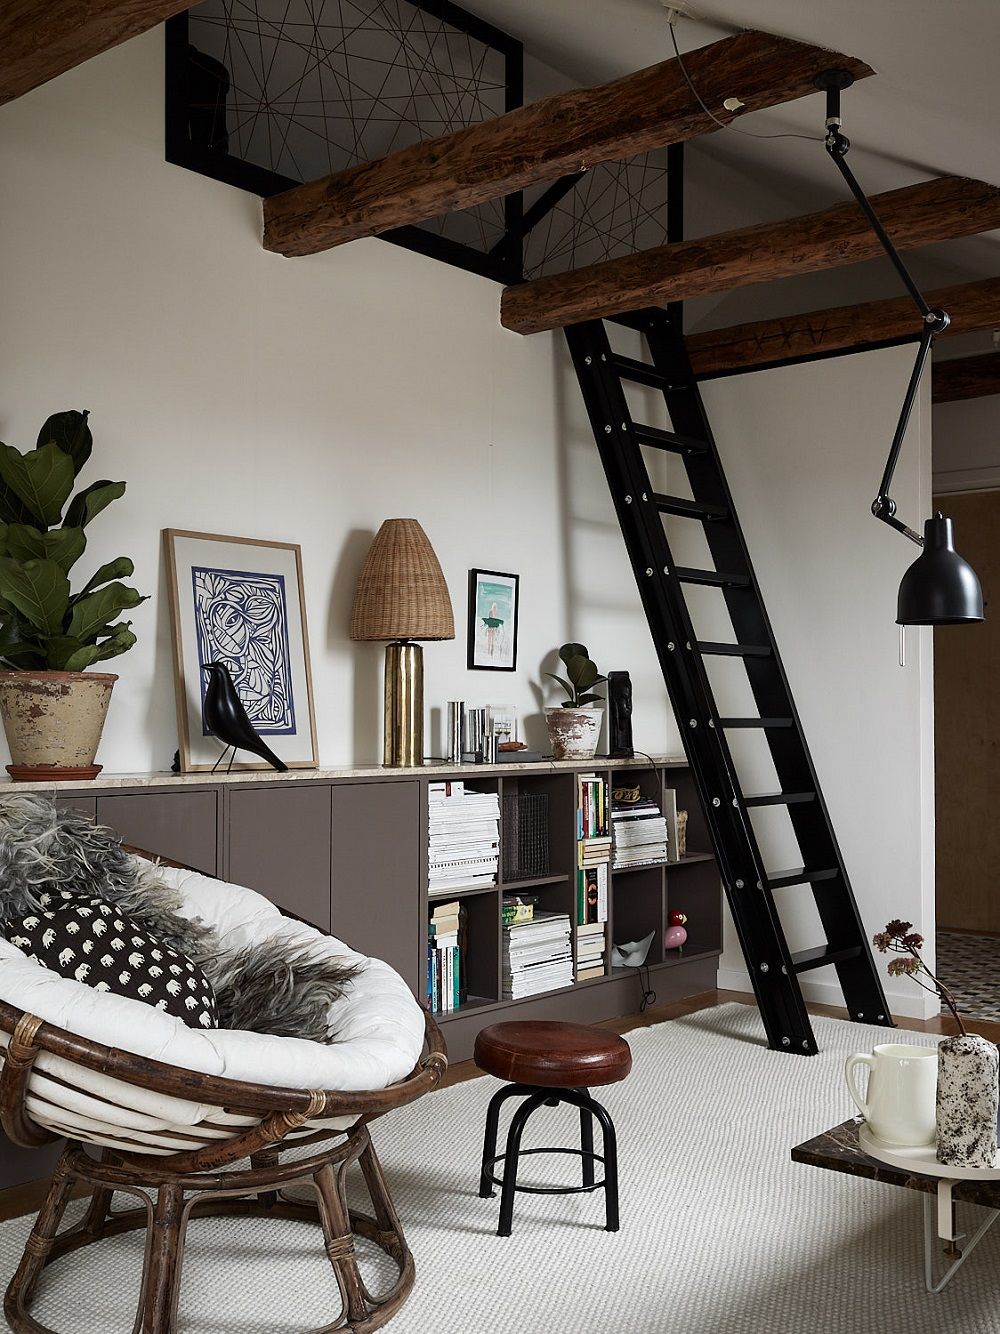 An amazing Scandinavian attic living room